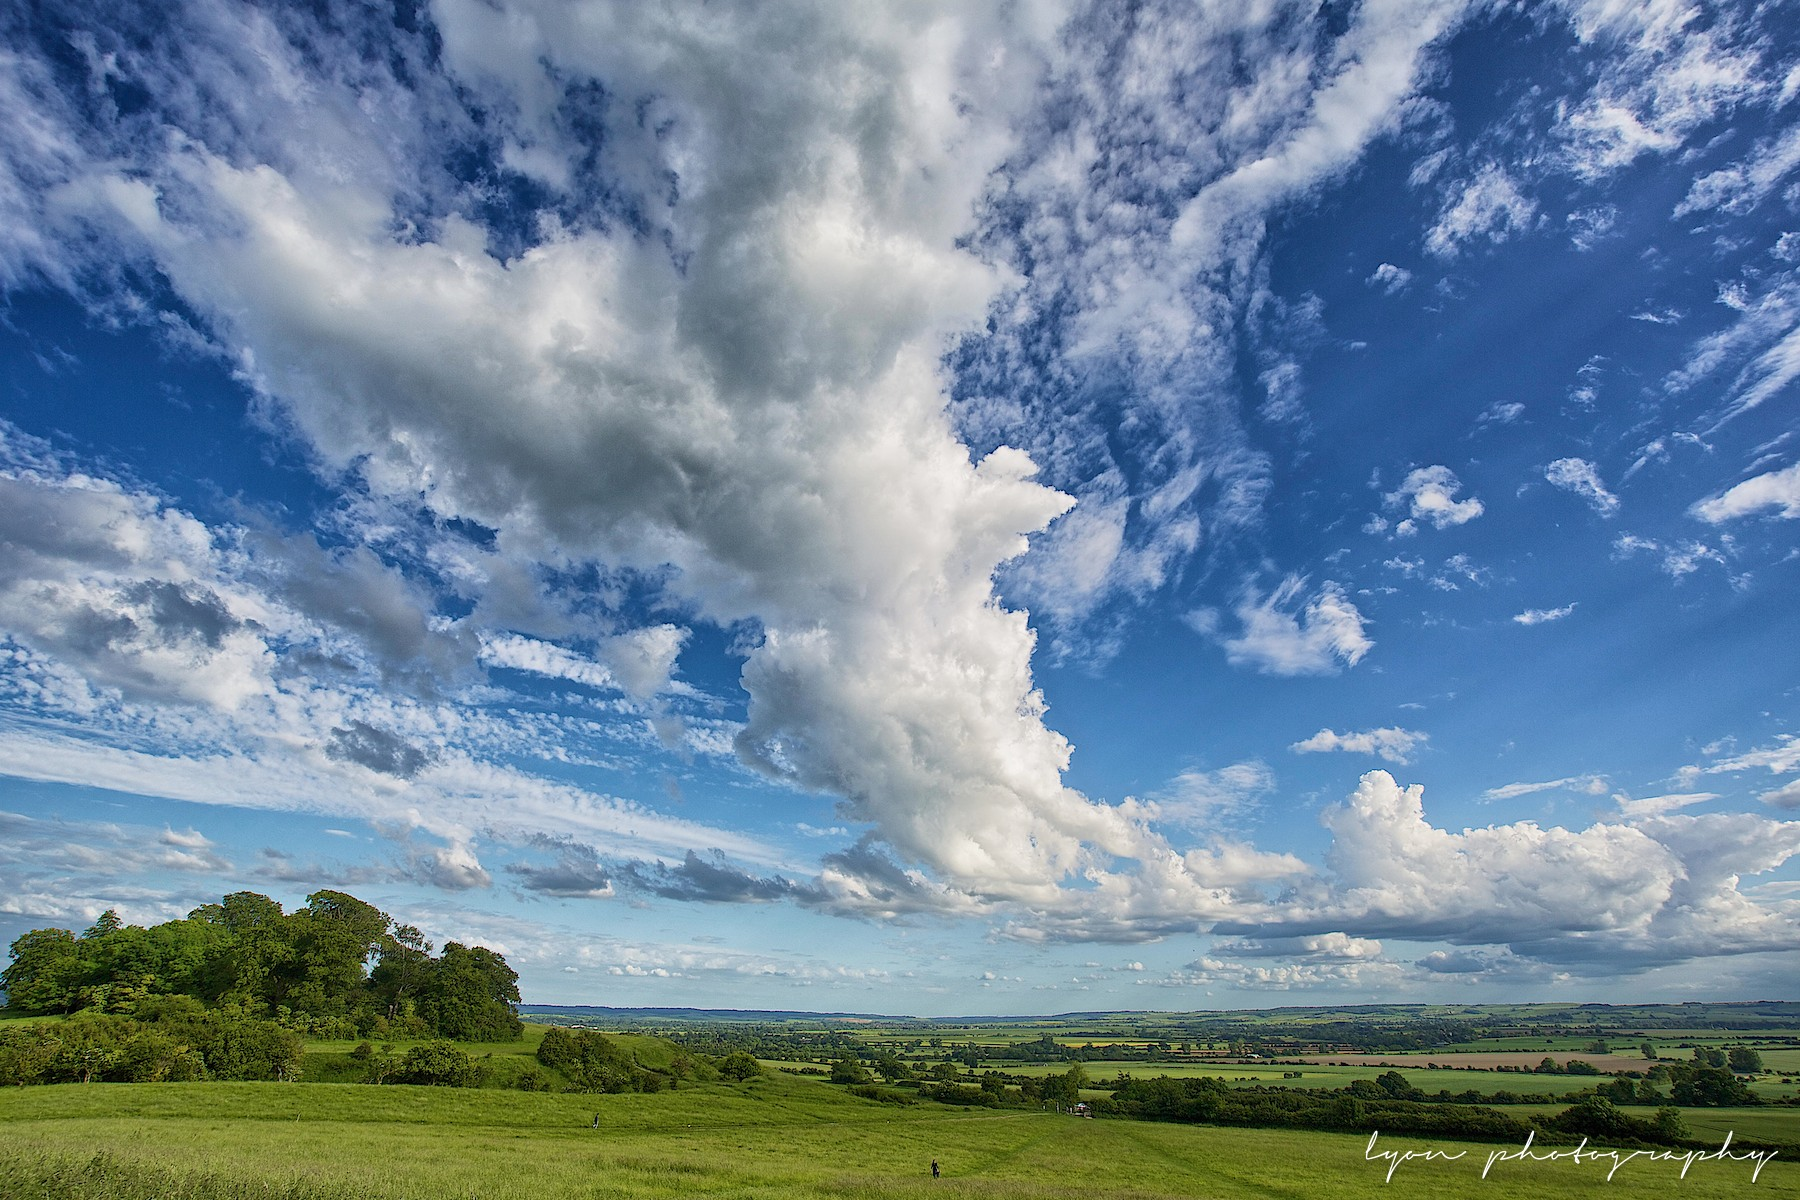 View towards Brightwell-cum-Sotwell, from the Wittenham Clumps 08-06-14